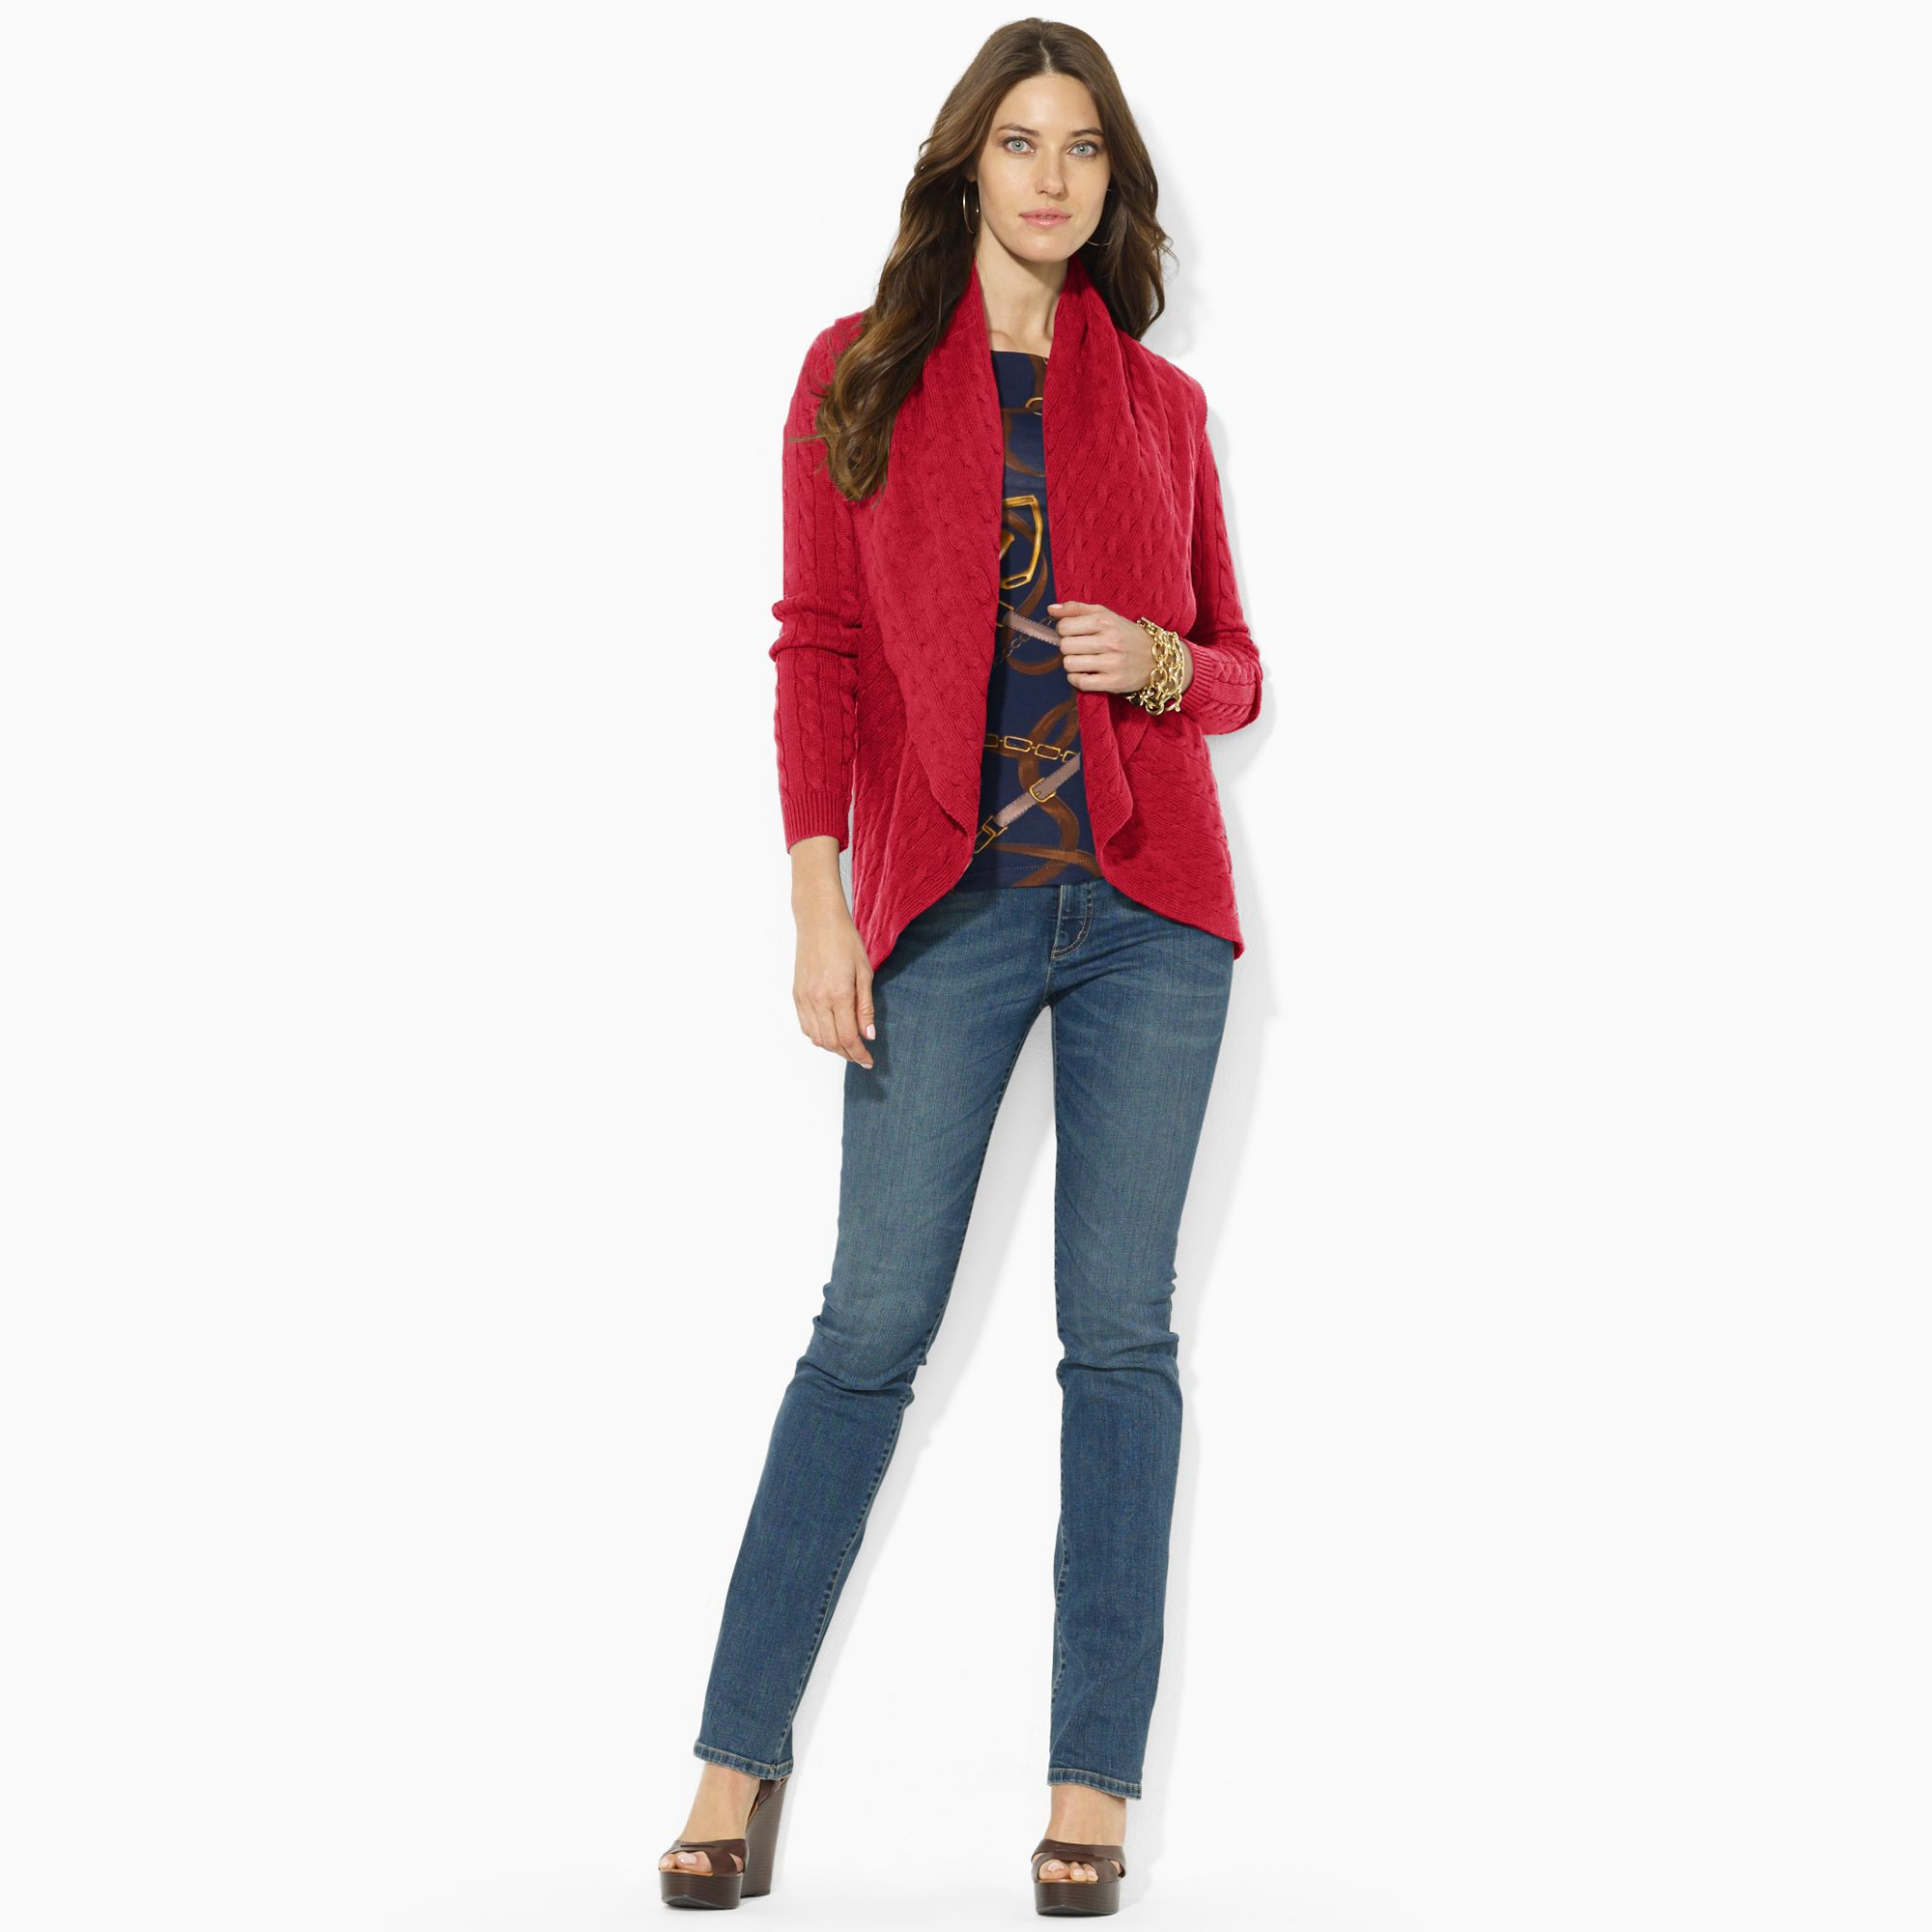 New Lauren by Ralph Lauren Cable Knit Circle Cardigan In Red Circle Cardigan Of Adorable 41 Ideas Circle Cardigan